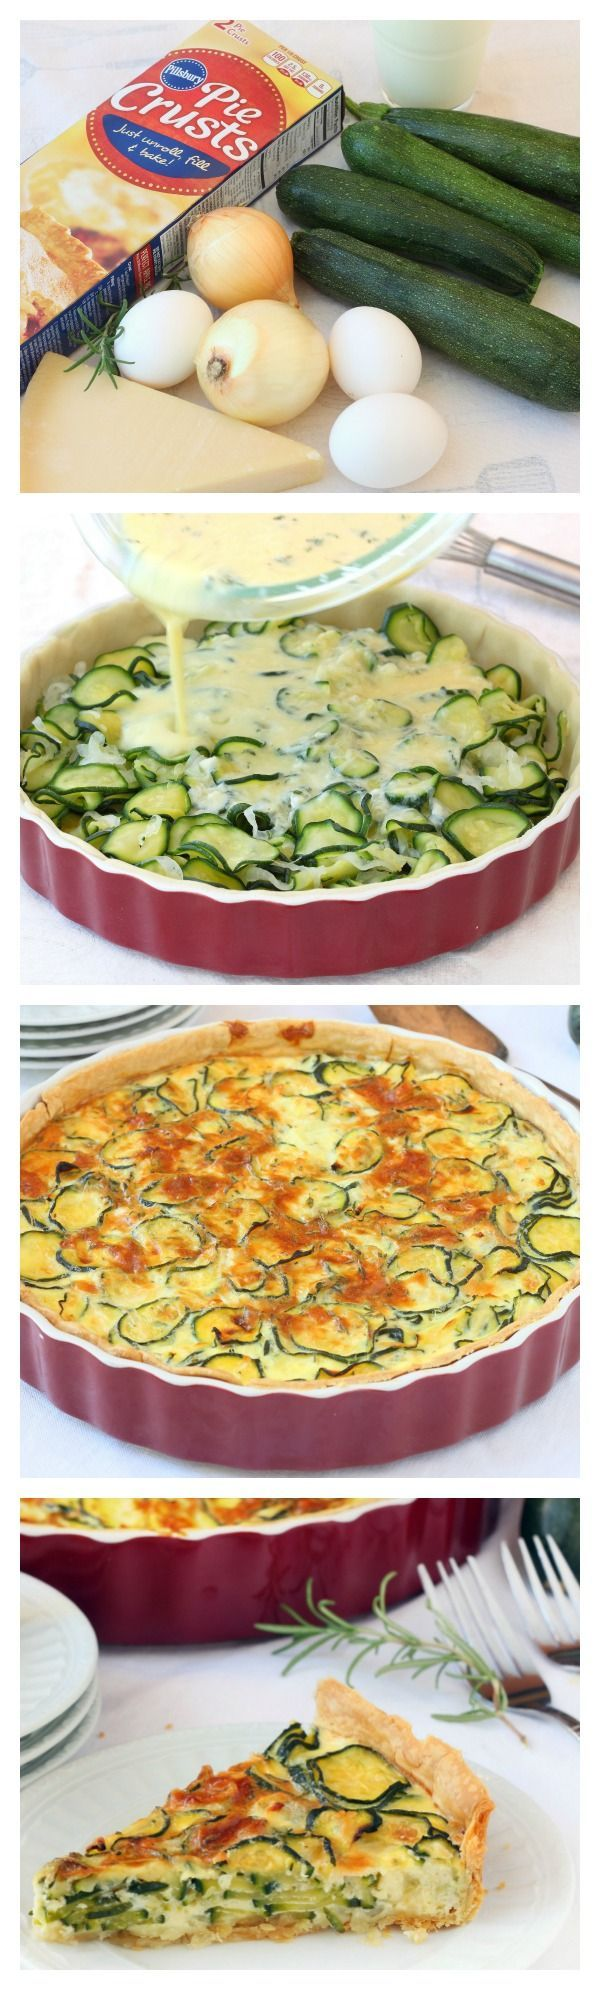 Use up summer zucchini in this savory make-ahead veggie pie!